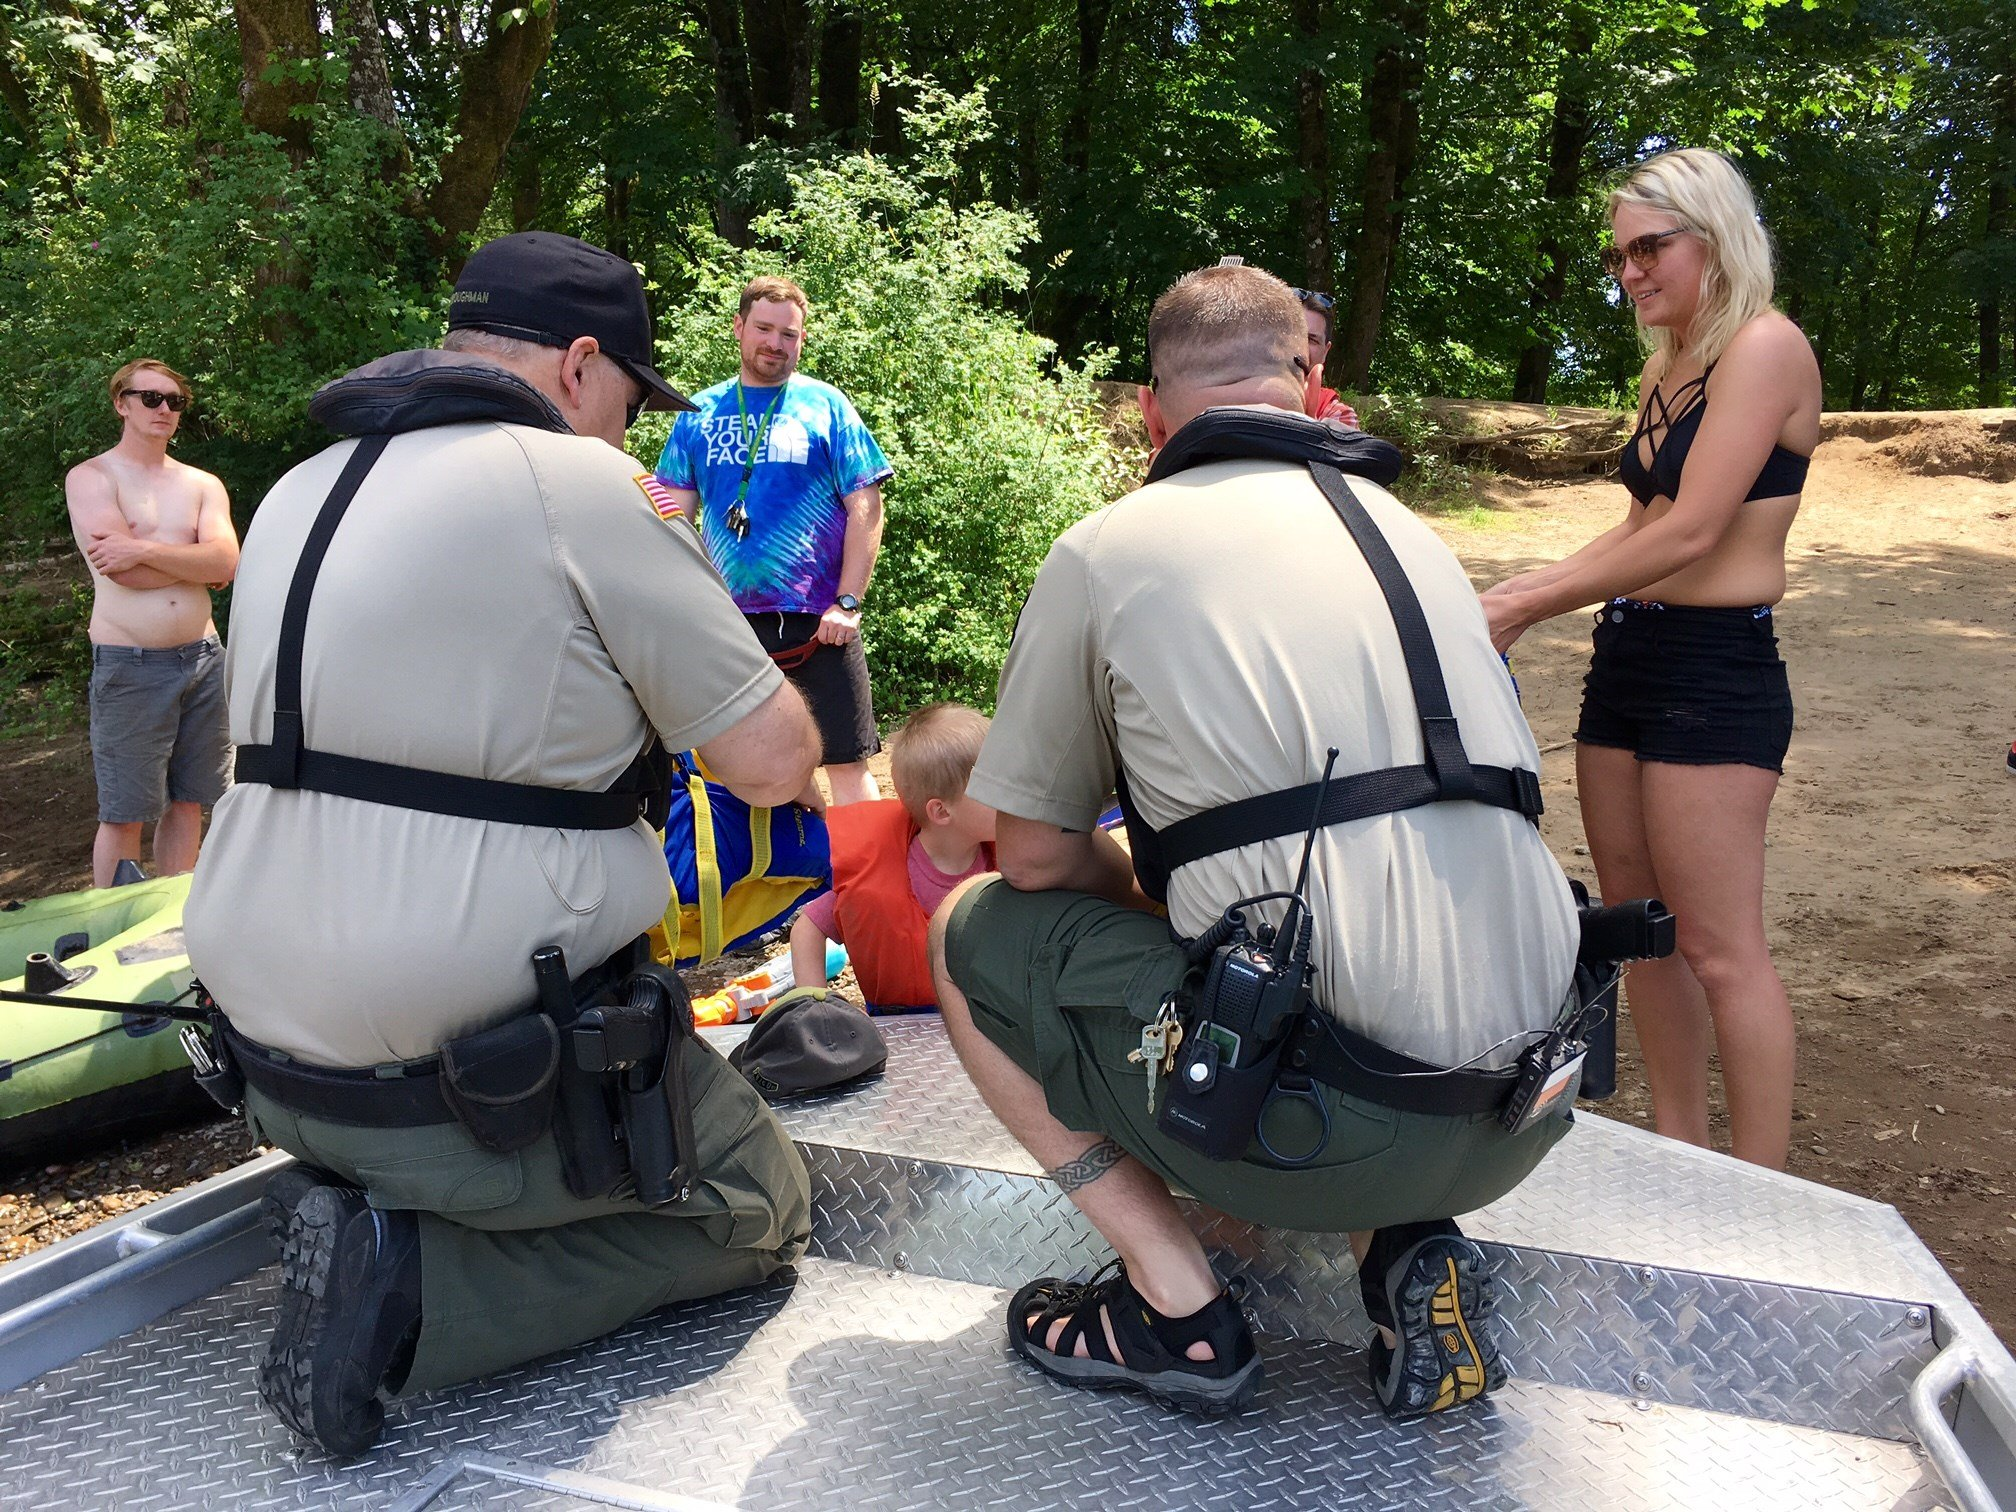 Members of the Clackamas County Sheriff's Marine Patrol Unit speaking with a family Monday. (Source: KPTV)